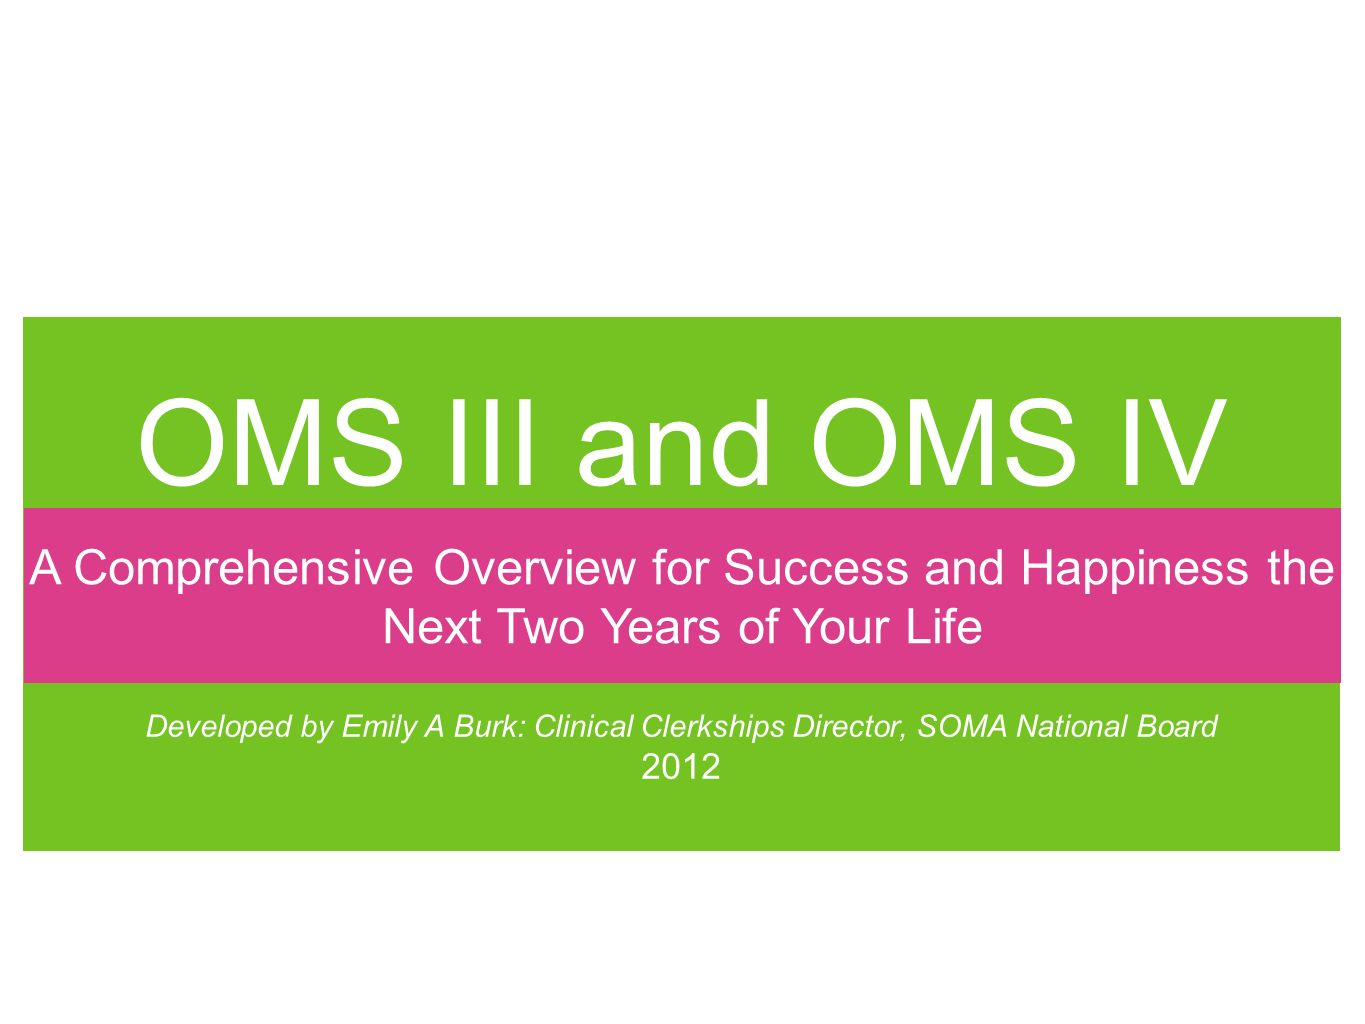 OMS III and OMS IV Developed by Emily A Burk: Clinical Clerkships Director, SOMA National Board 2012 A Comprehensive Overview for Success and Happiness the Next Two Years of Your Life